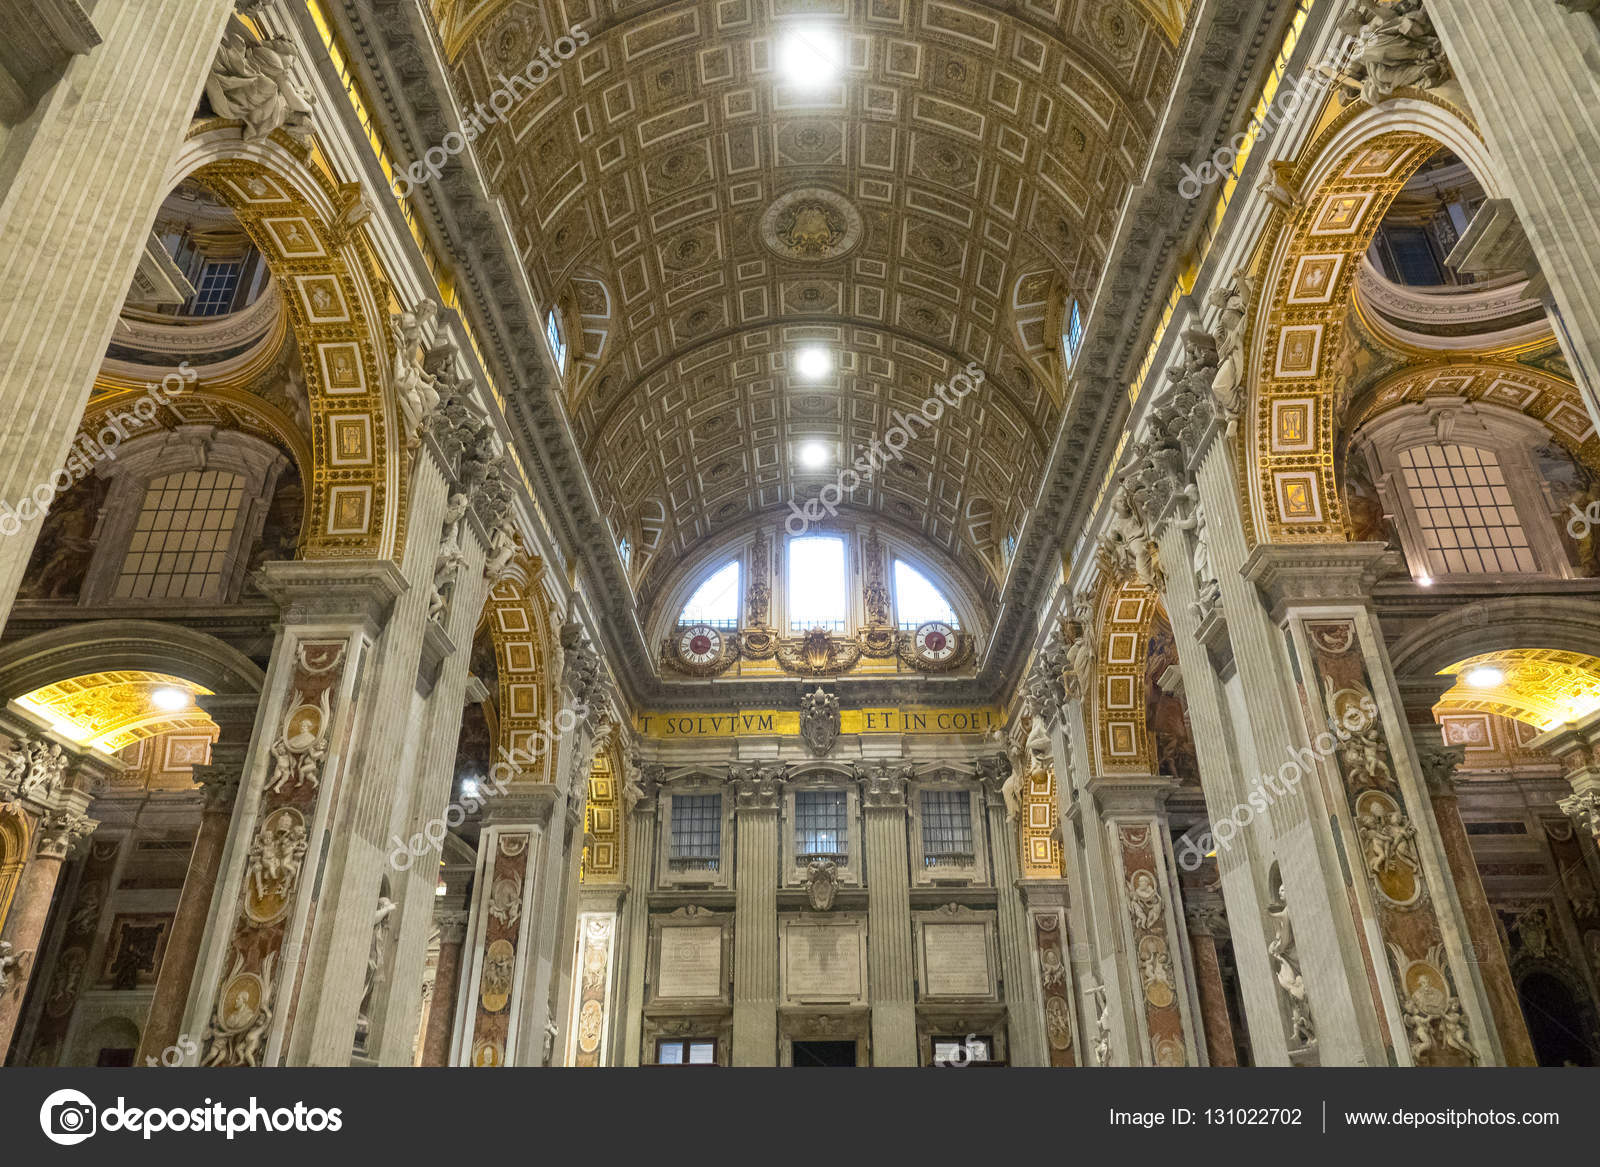 Wonderful St Peters Basilica in Rome - the most important